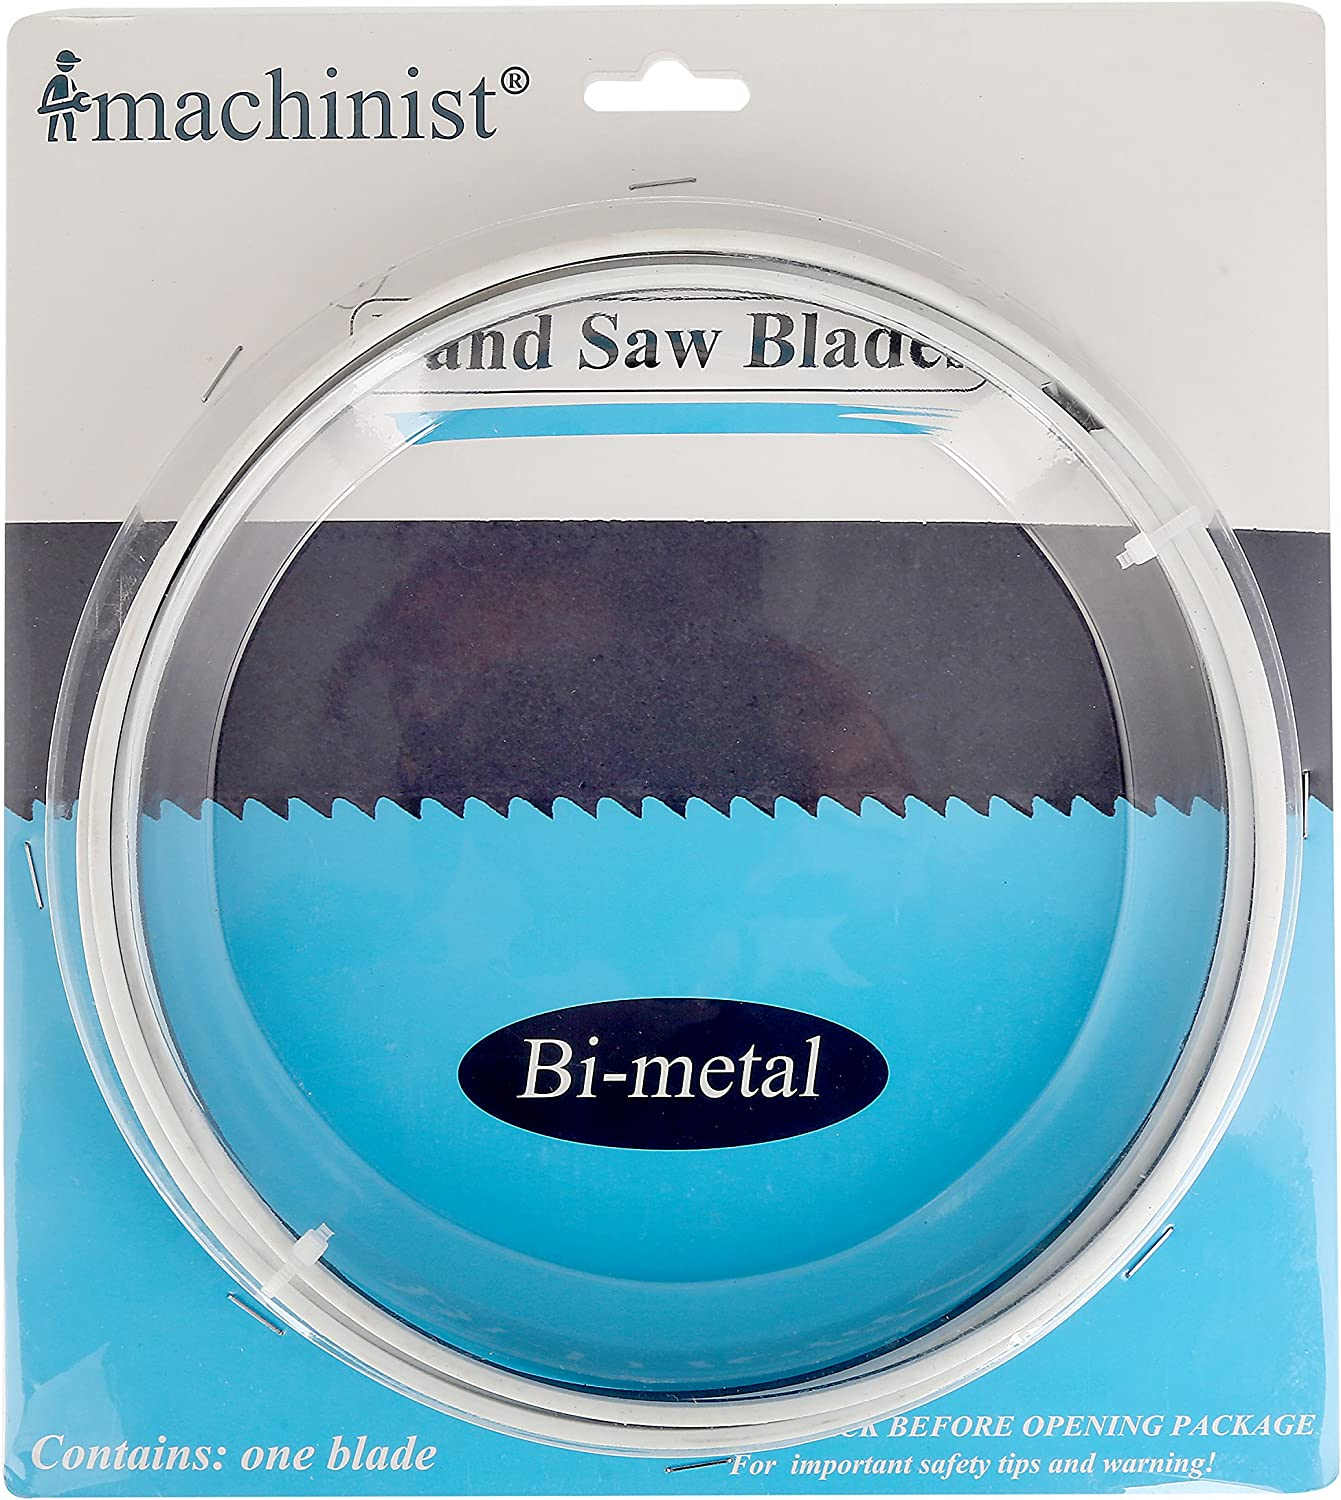 Imachinist Challenge the lowest price S713414 Bi-metal Band Saw Phoenix Mall Blades 1 4 Inch 71-3 Long